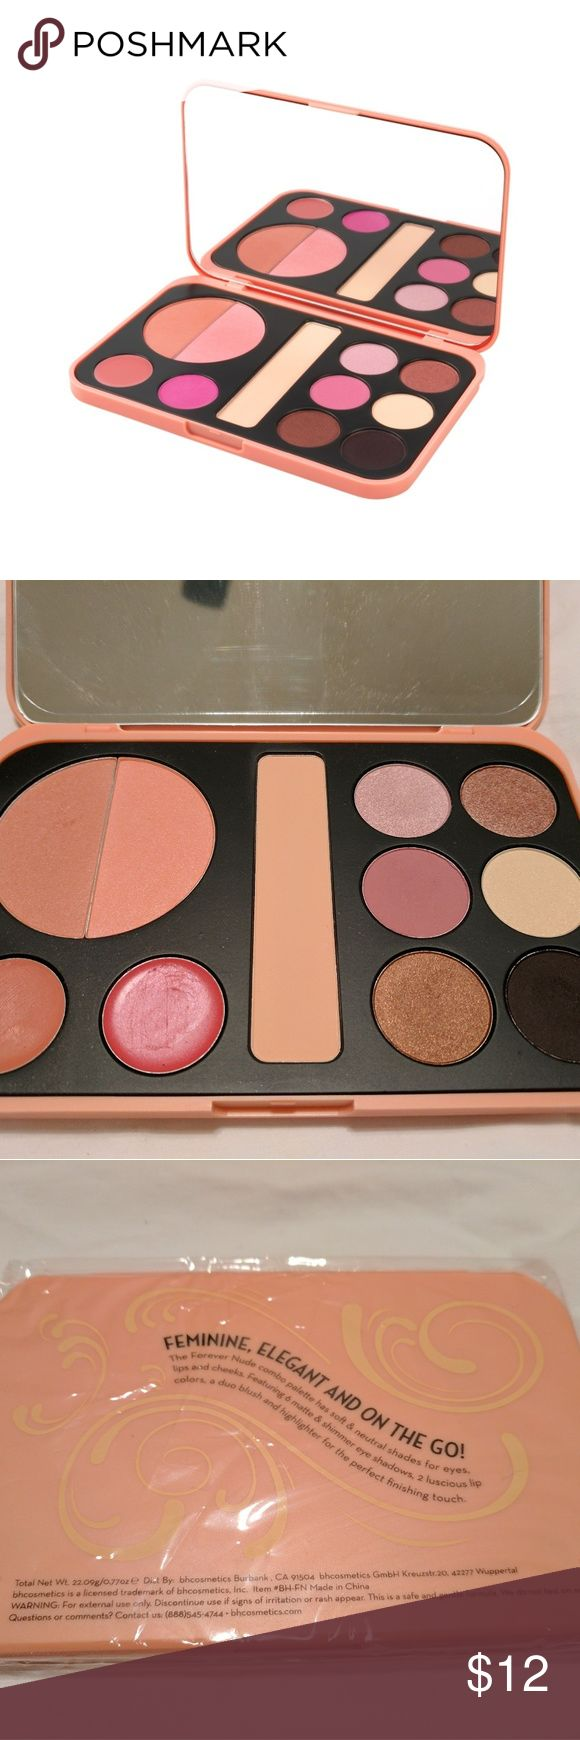 Selling this bh cosmetics Forever Nude makeup palette on Poshmark! My username is: red_passion1997. #shopmycloset #poshmark #fashion #shopping #style #forsale #bh cosmetics #Other